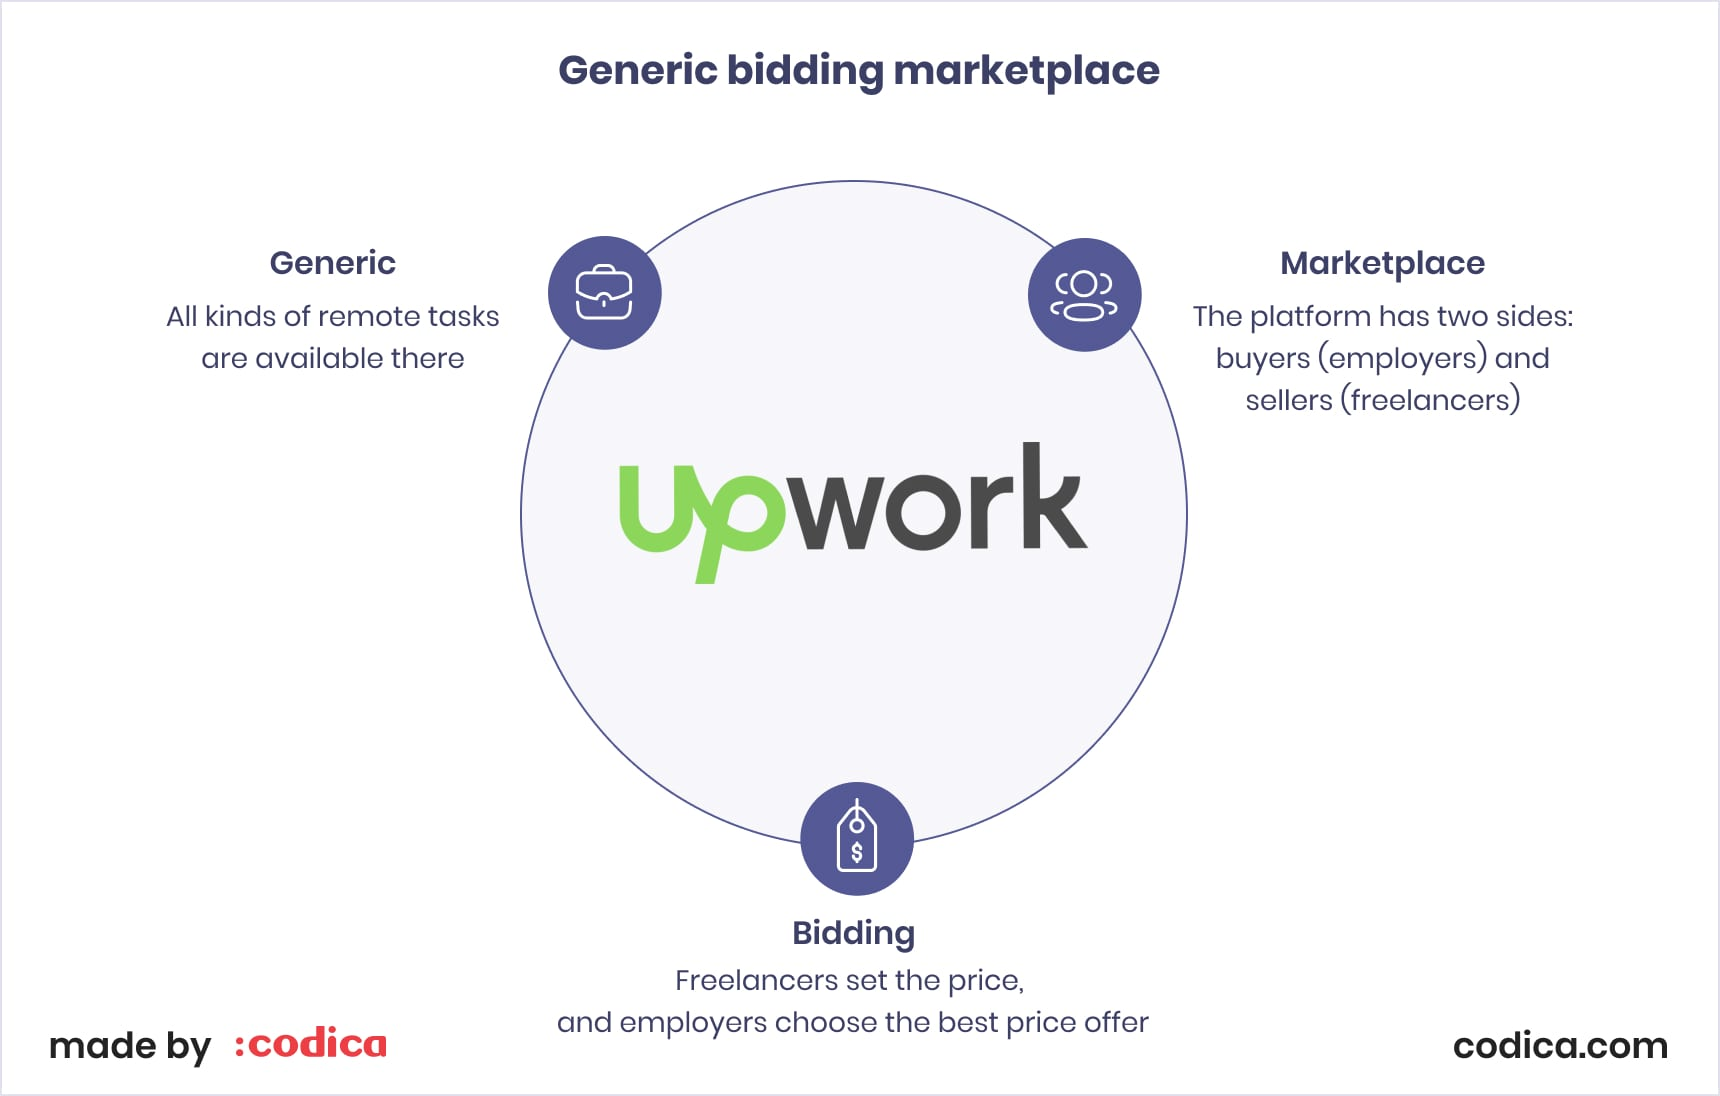 The structure of the generic bidding marketplace Upwork